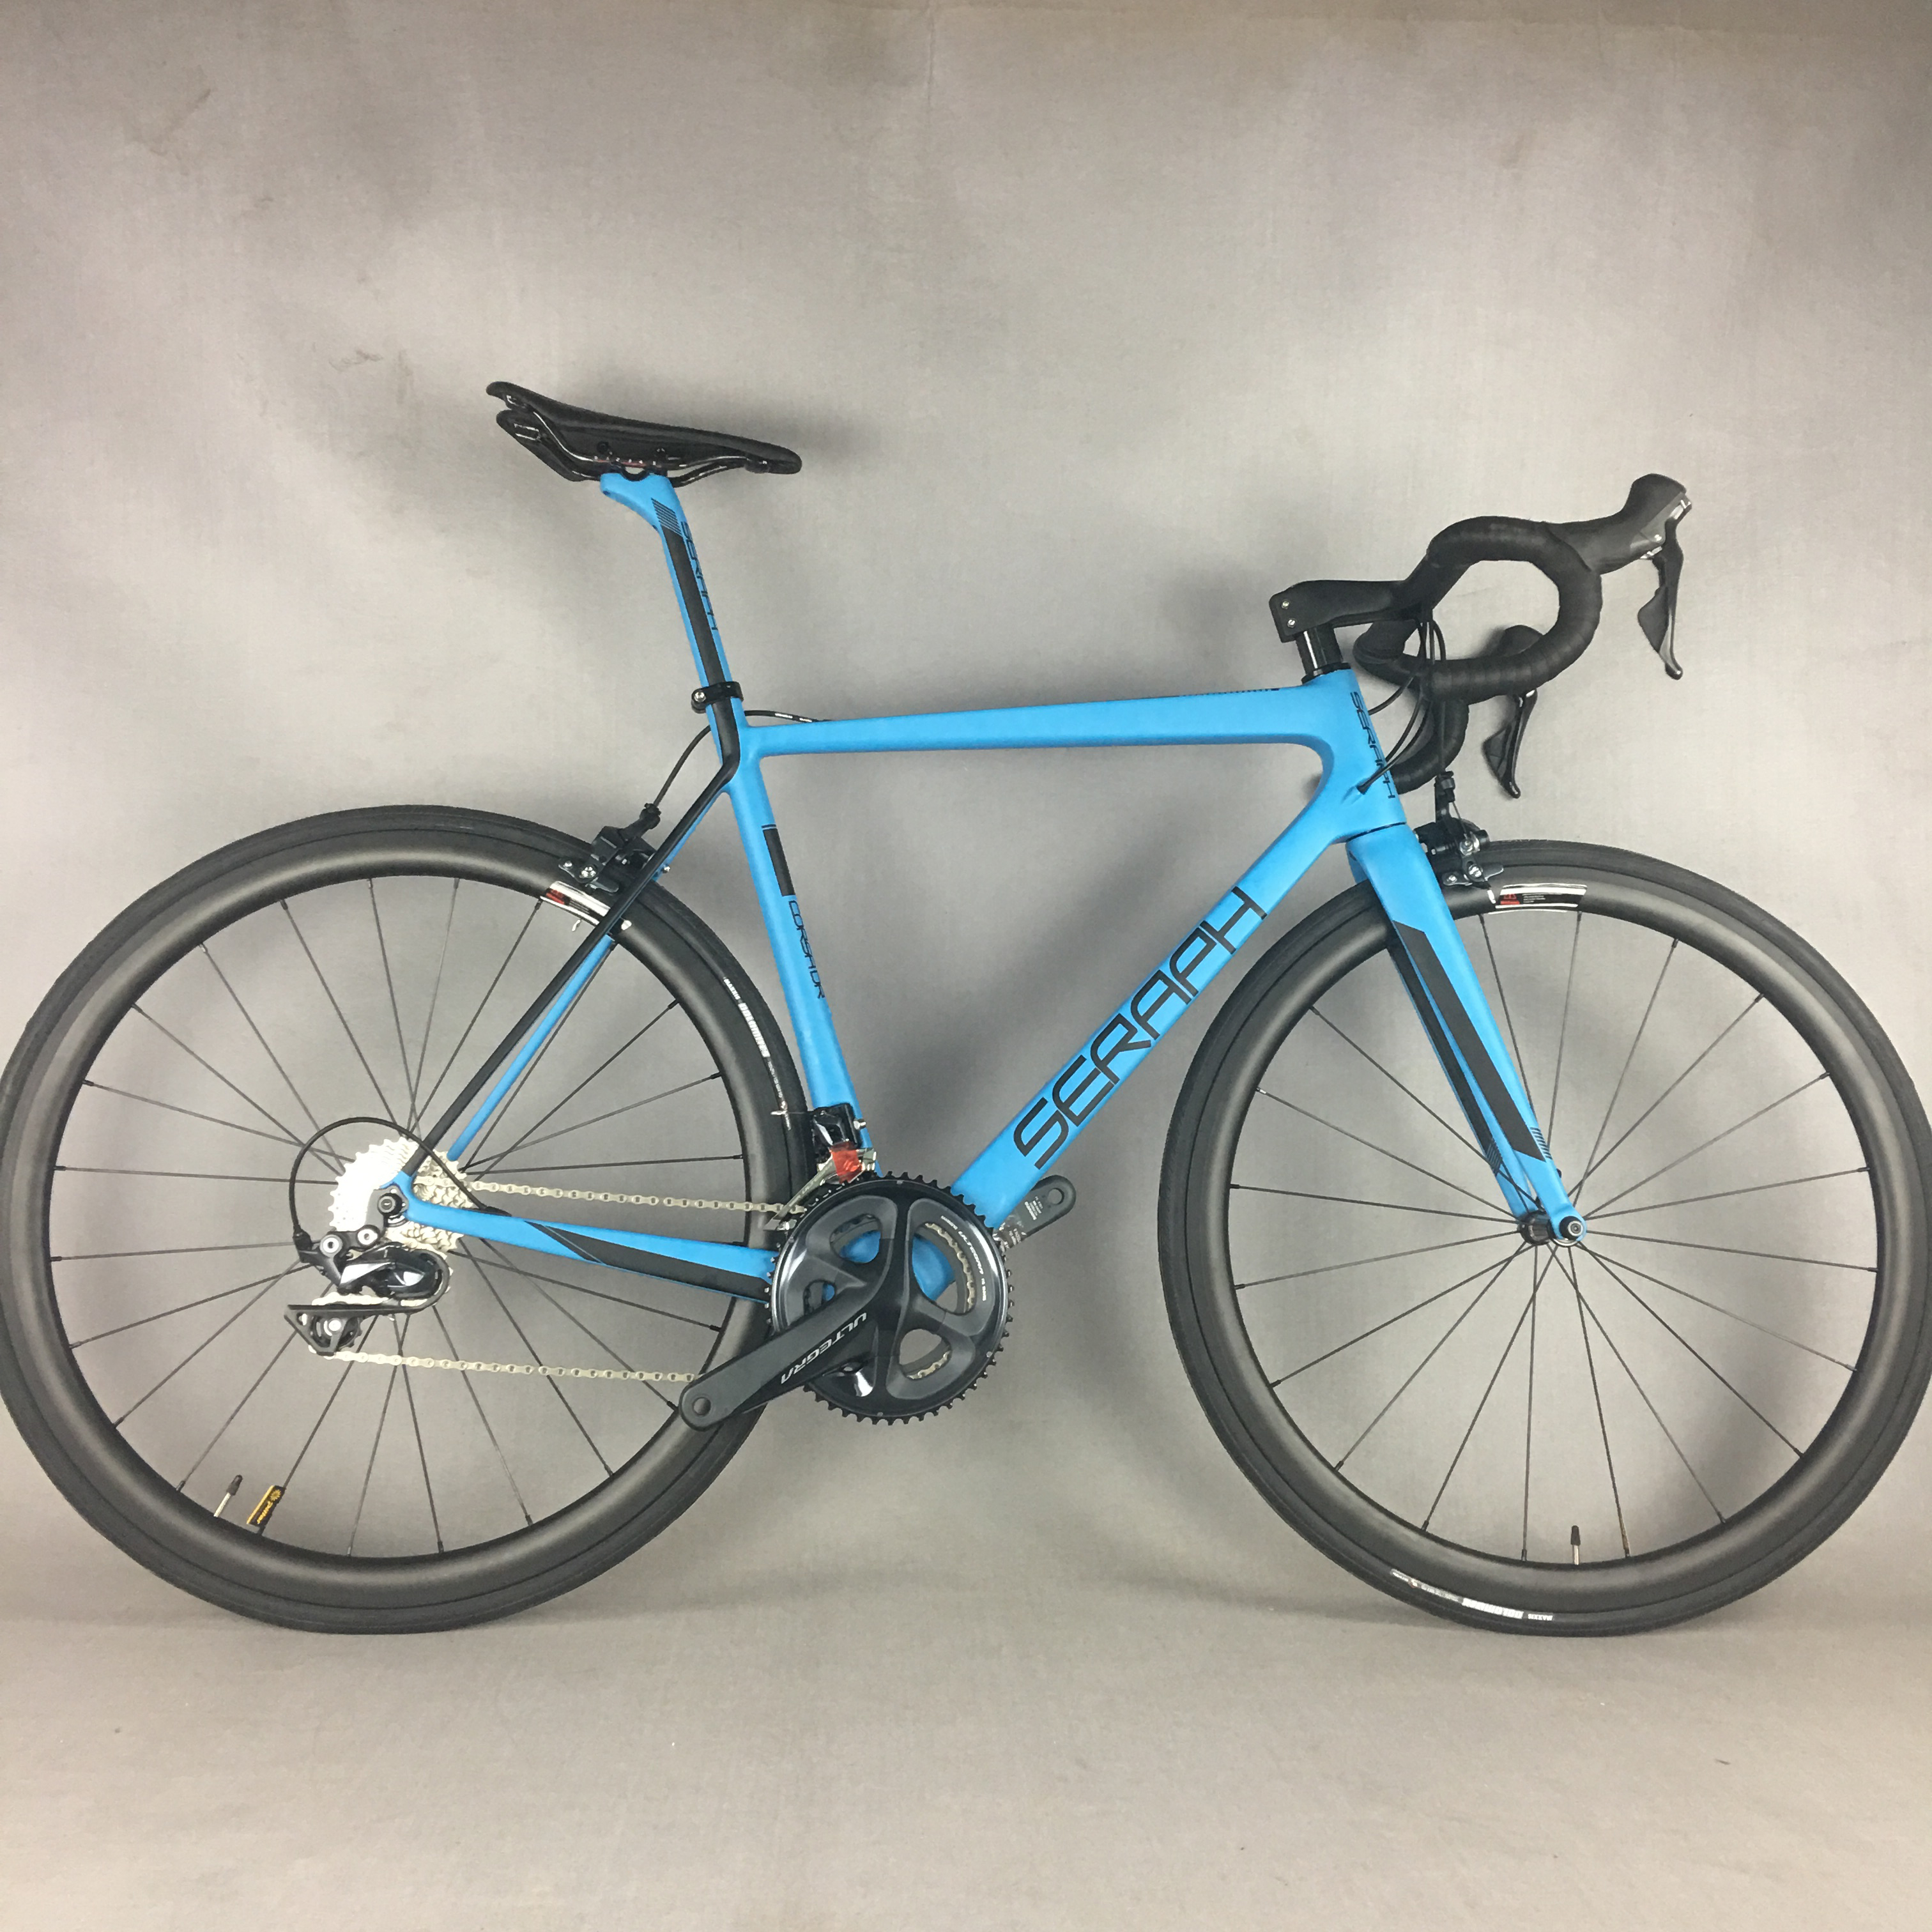 2019 Blue Paint Seraph Brand Complete Bike SH1MANO R8000 Groupset With 22 Speed 700*25C Tire Complete Carbon Road  Bicycle FM686